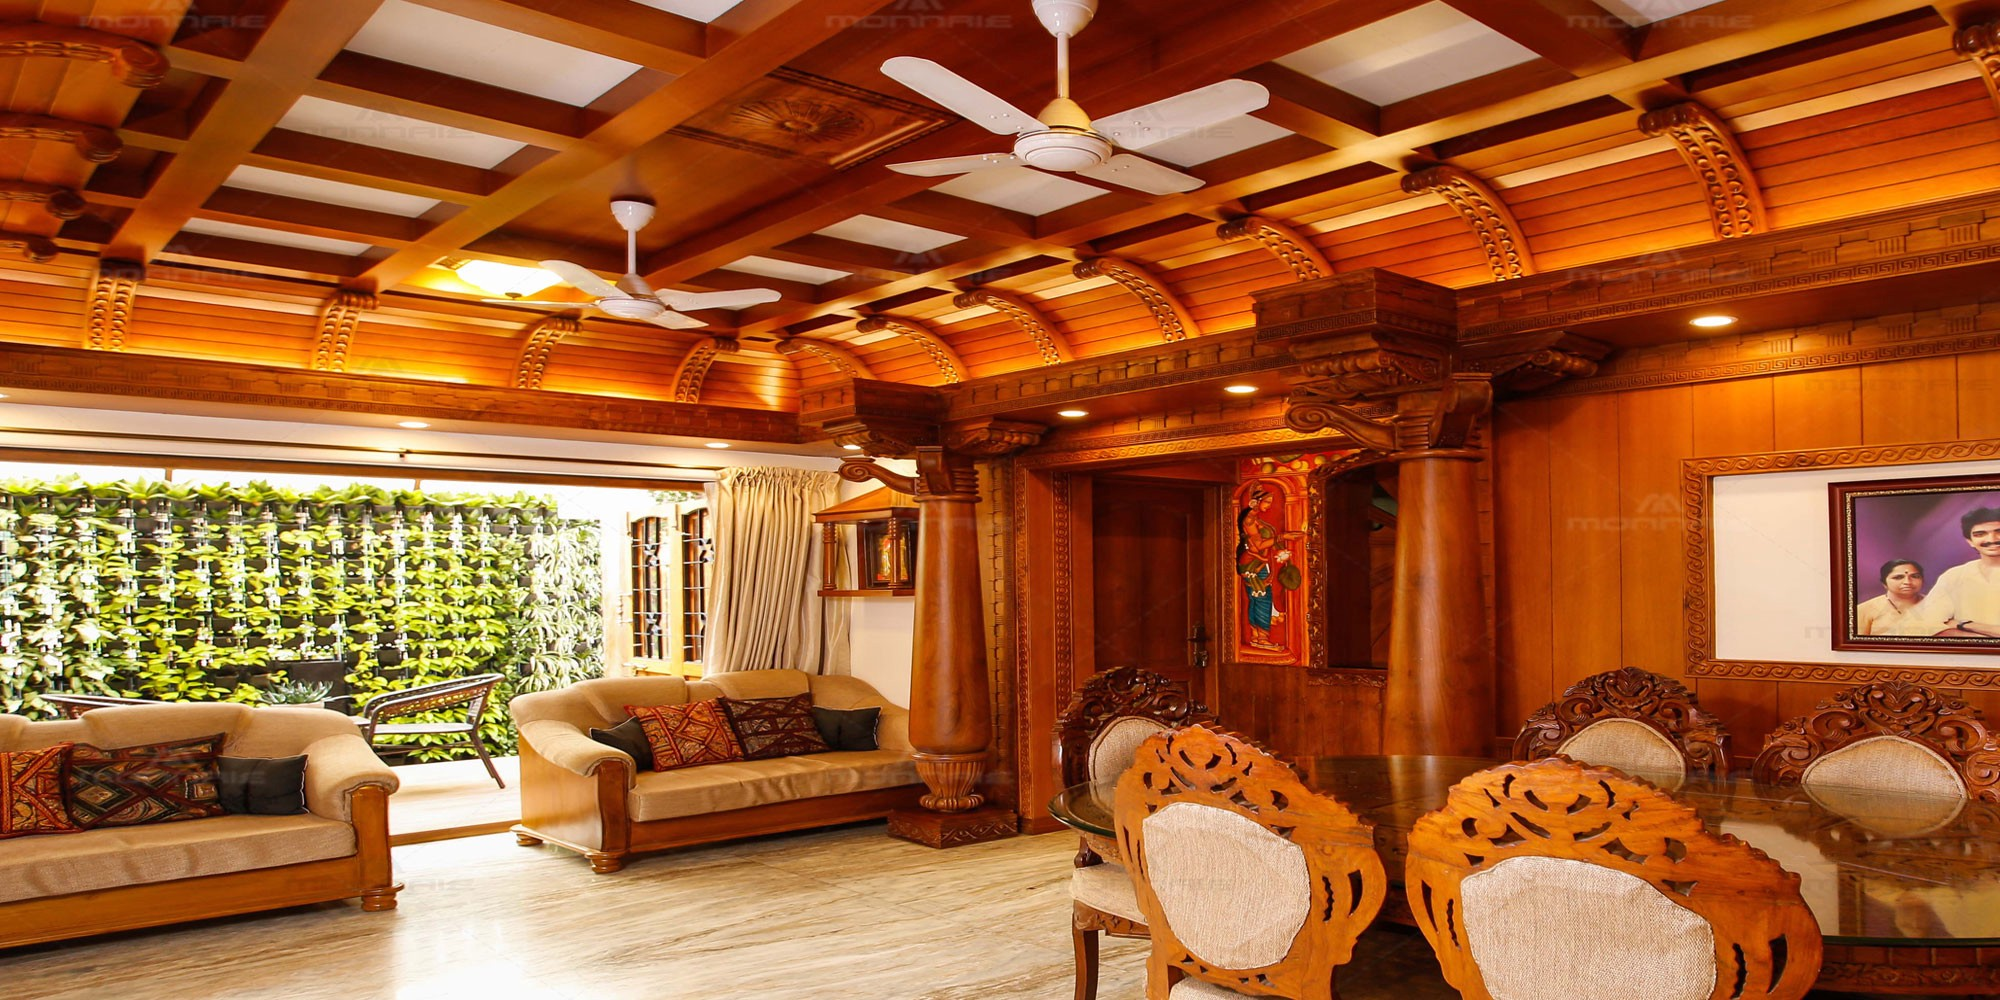 Interior Designing The Kerala Style By Monnaie Architects Interiors Medium